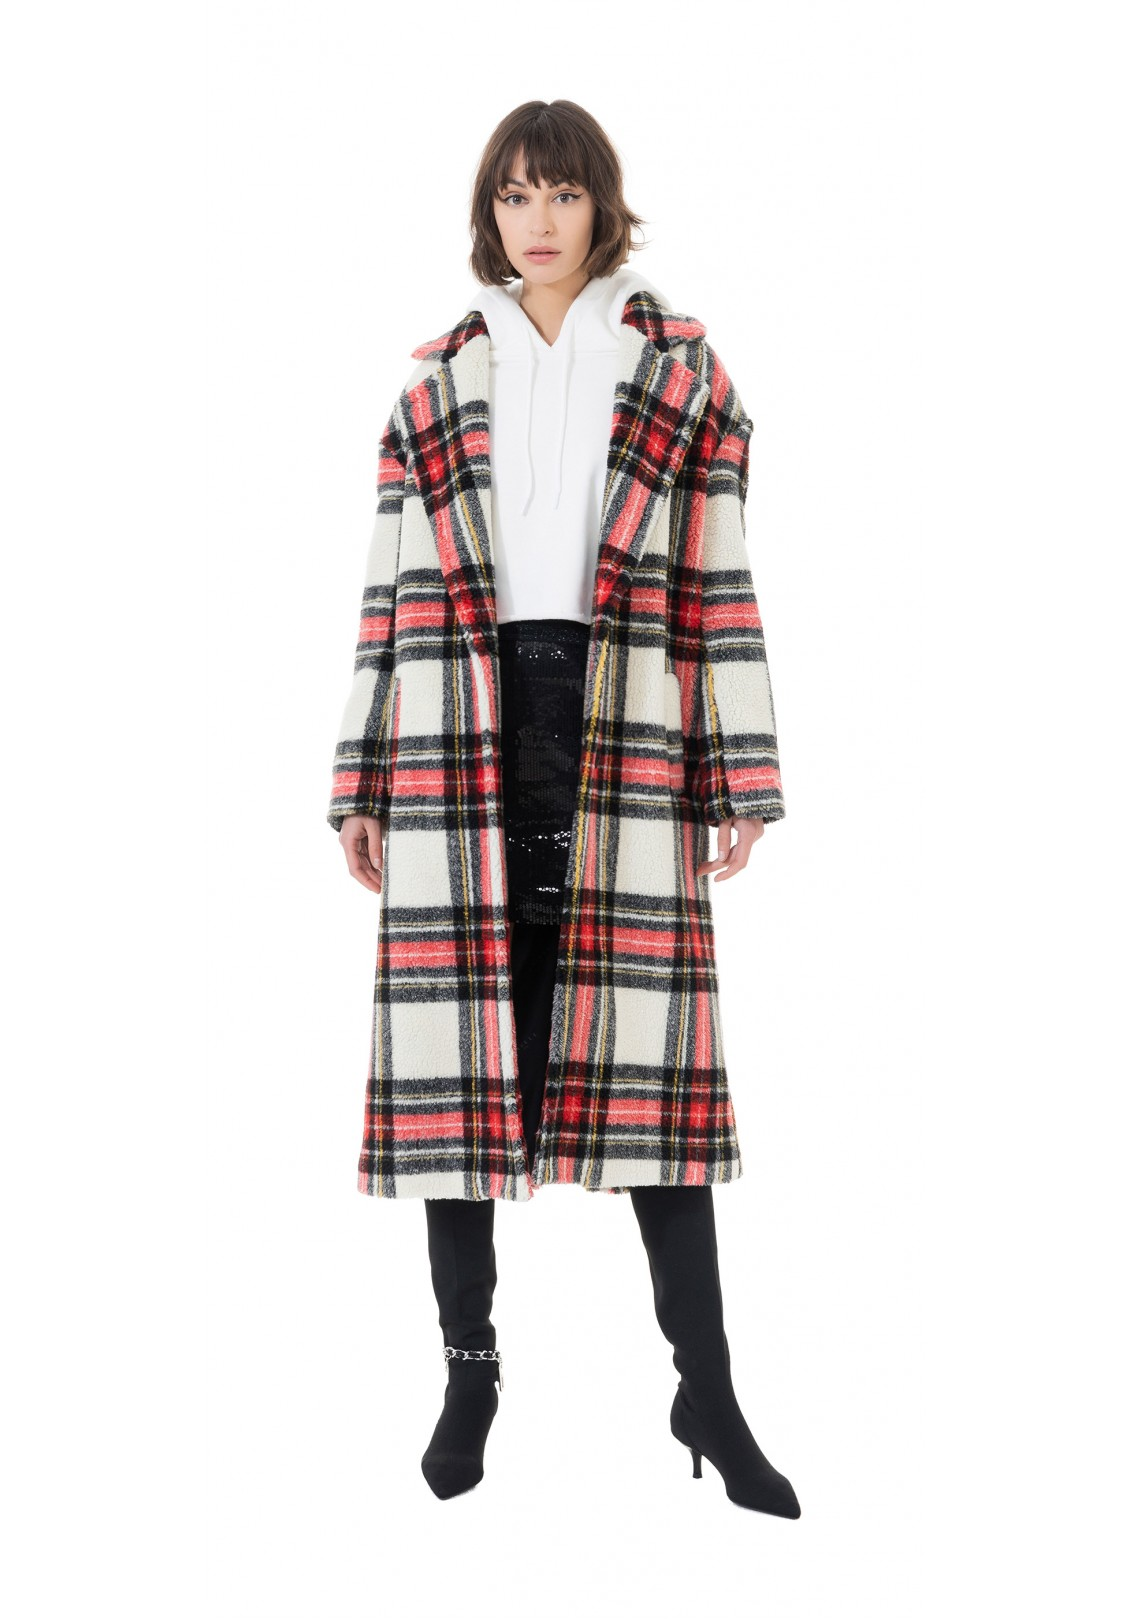 CAPPOTTO - GBD4942 - GAELLE PARIS